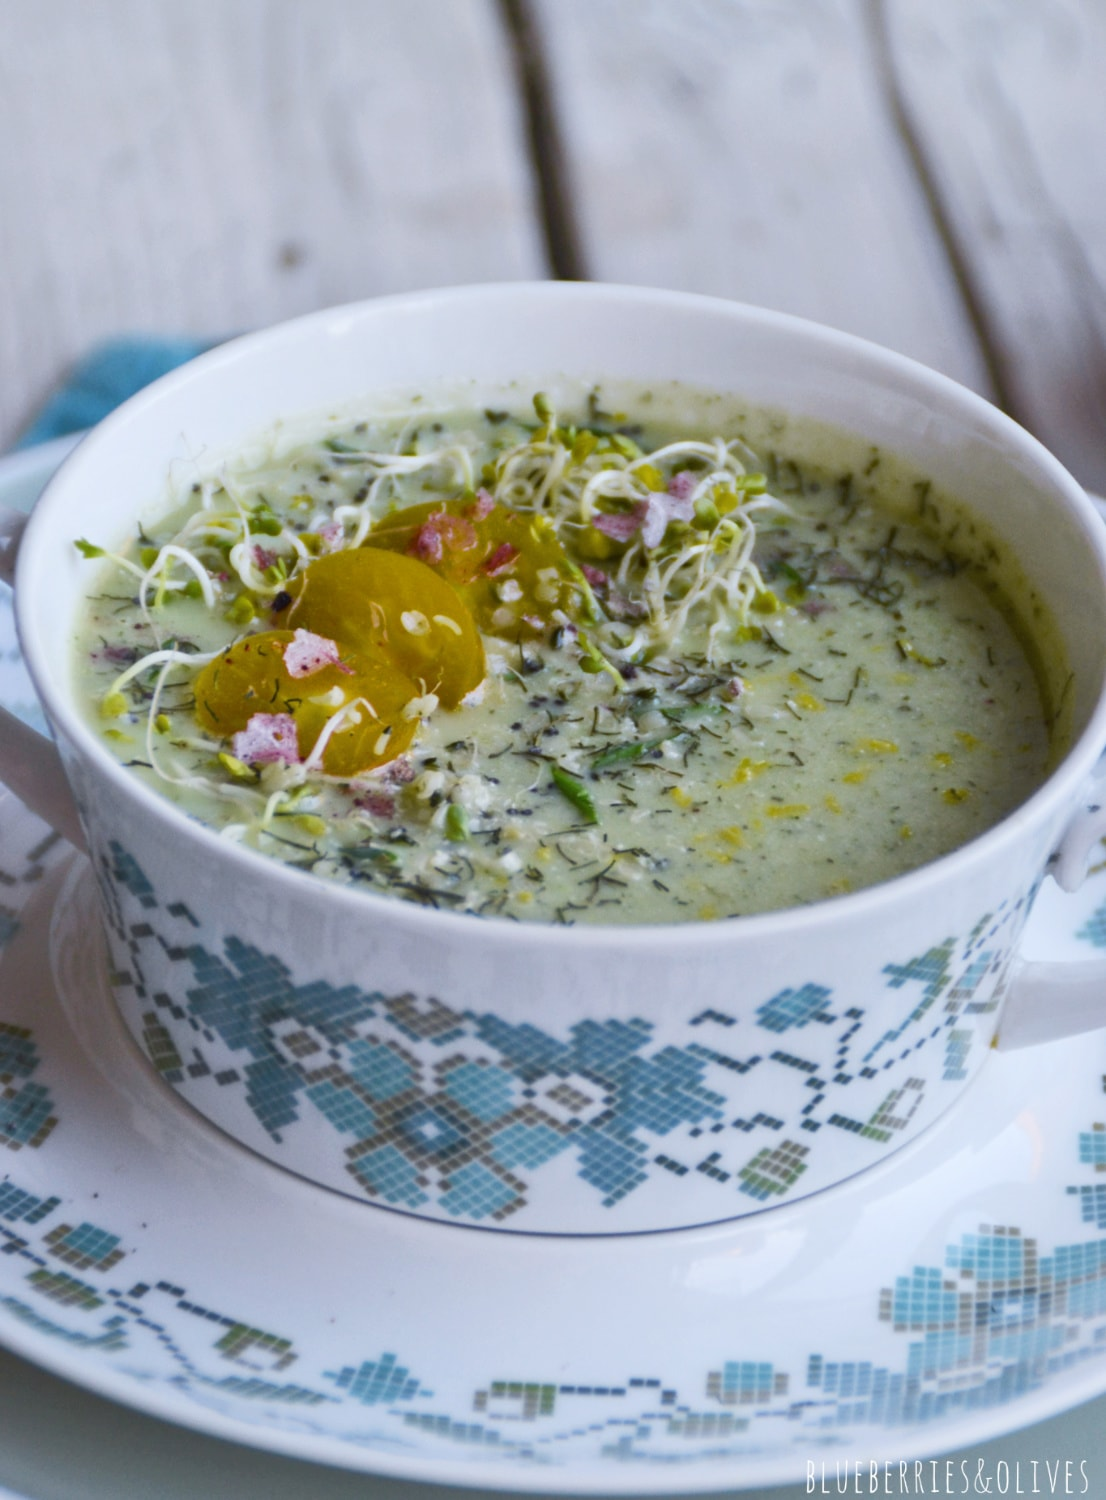 cold raw soup in vintage colorful porcelain bowl, blue tablecloth, yellow tomatoes